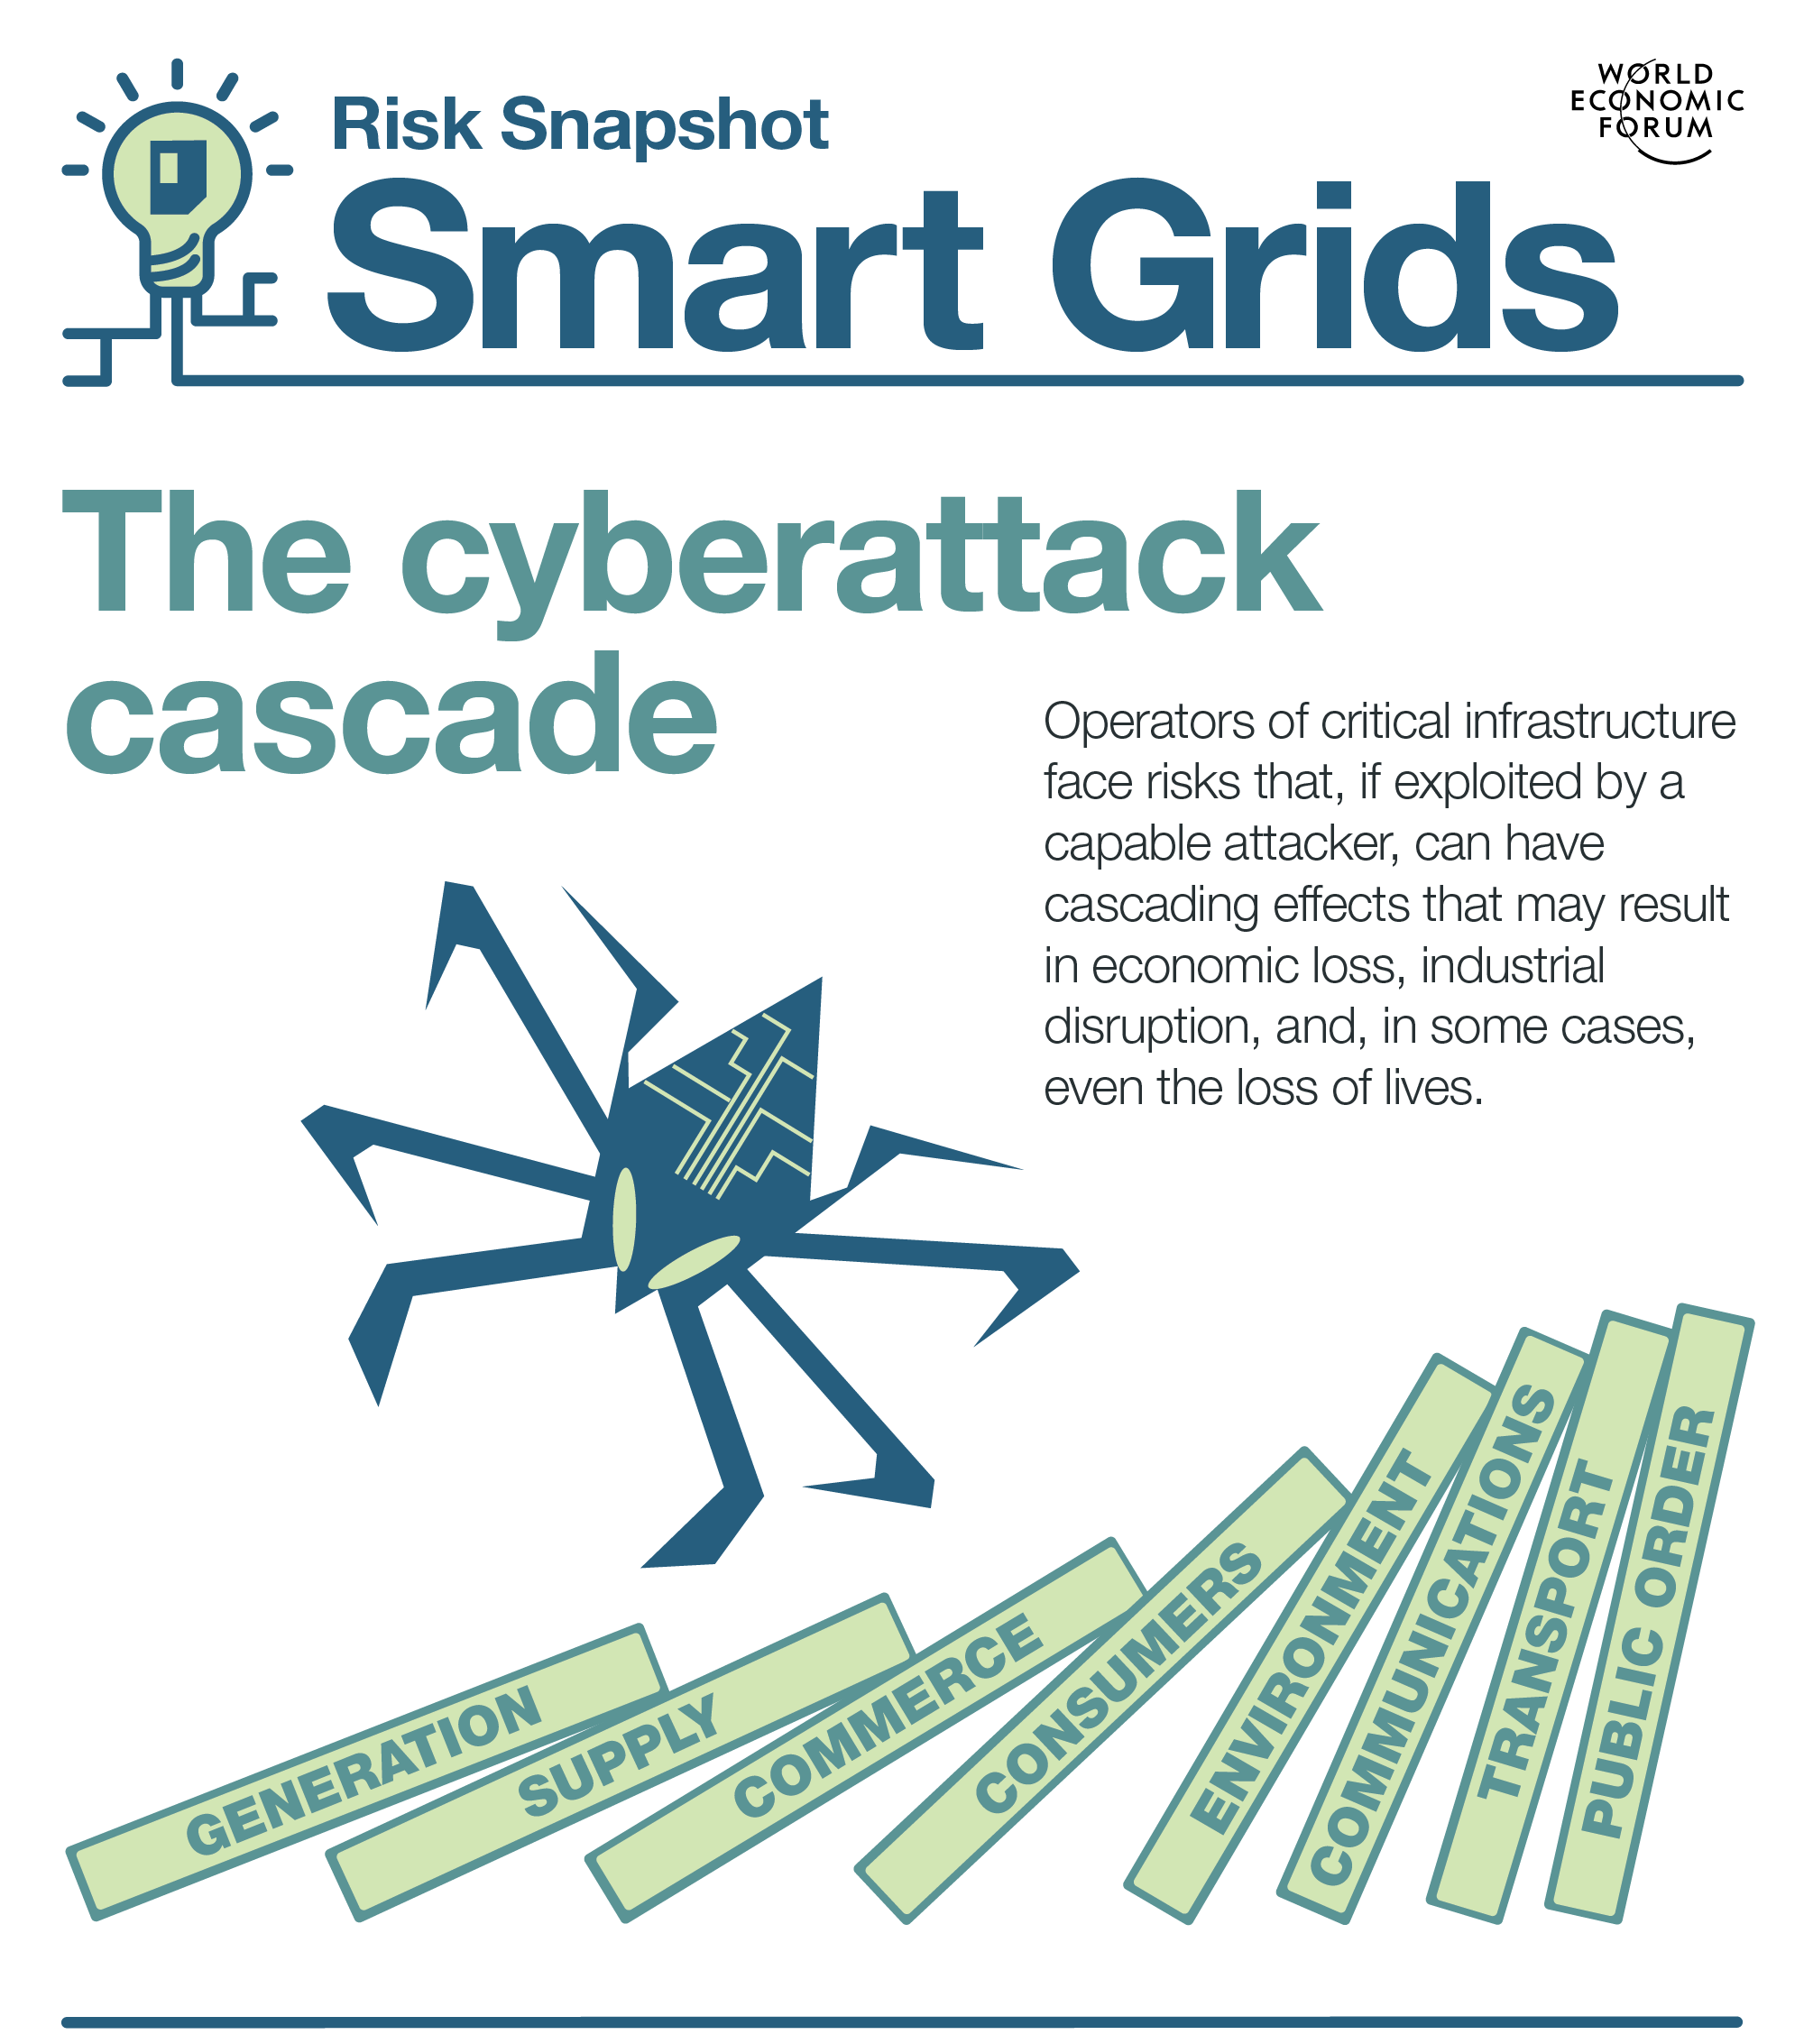 As grids become smarter, the risks posed by cyberattacks begin to stack up